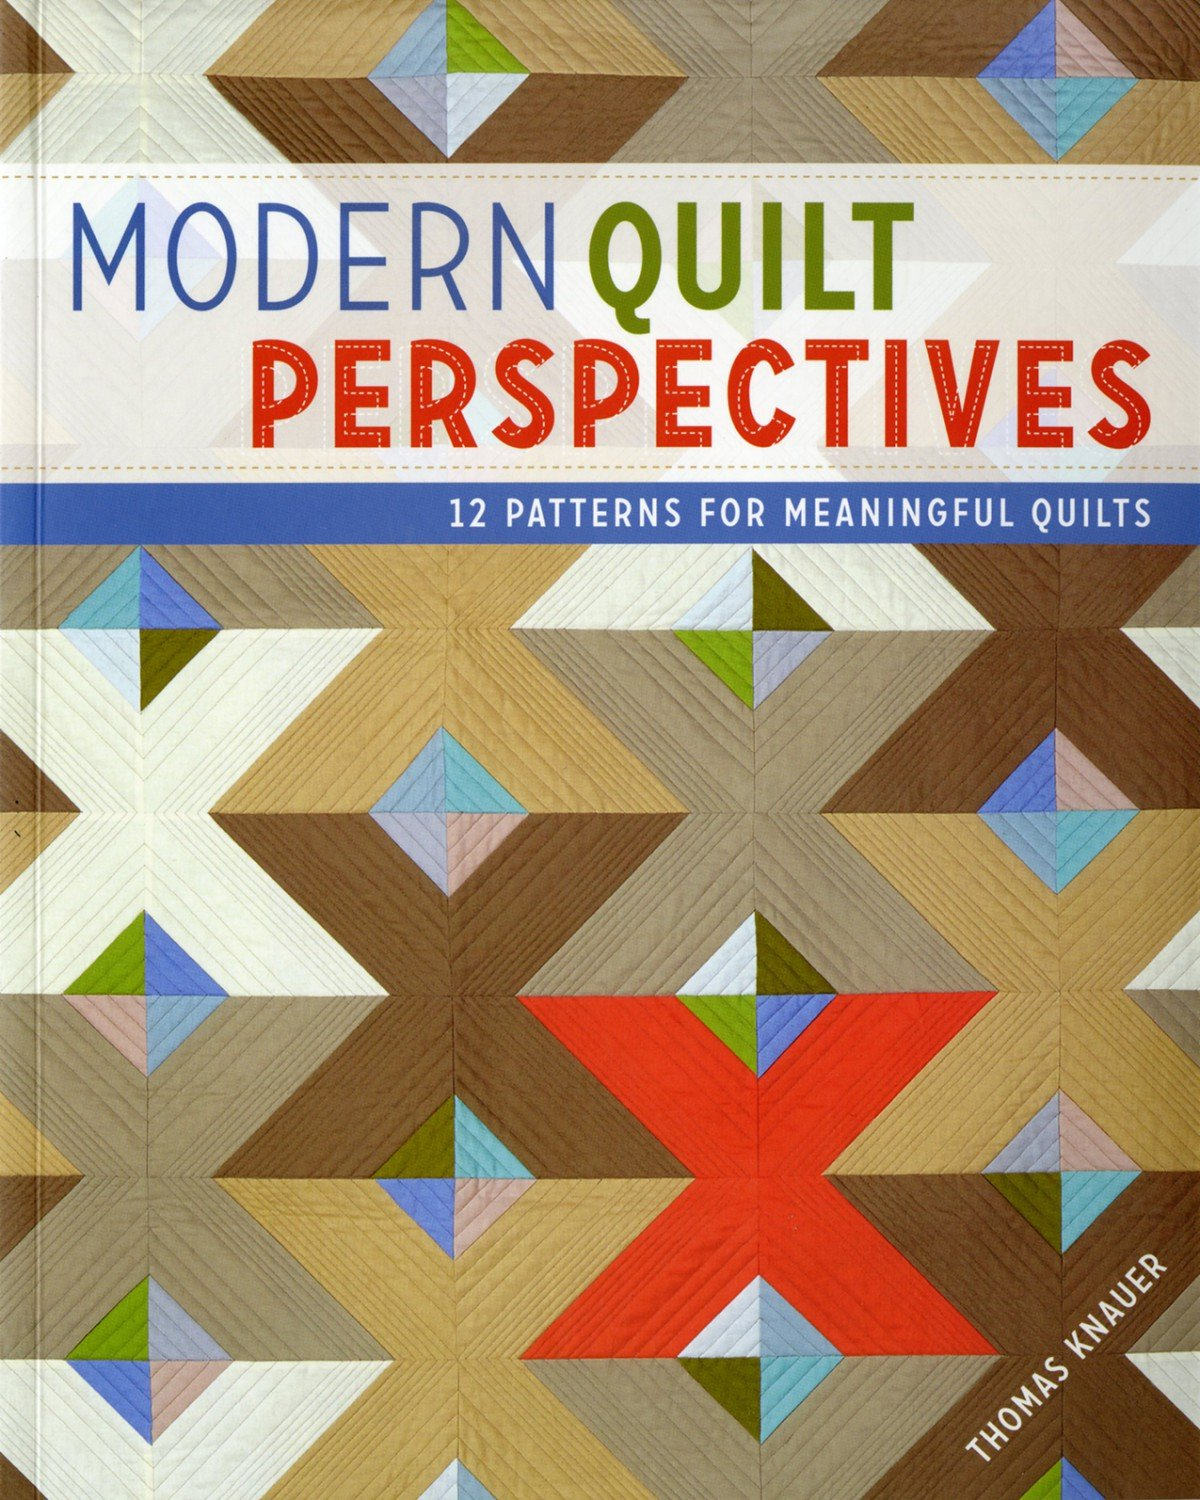 Modern Quilt Perspectives *AUTOGRAPHED*